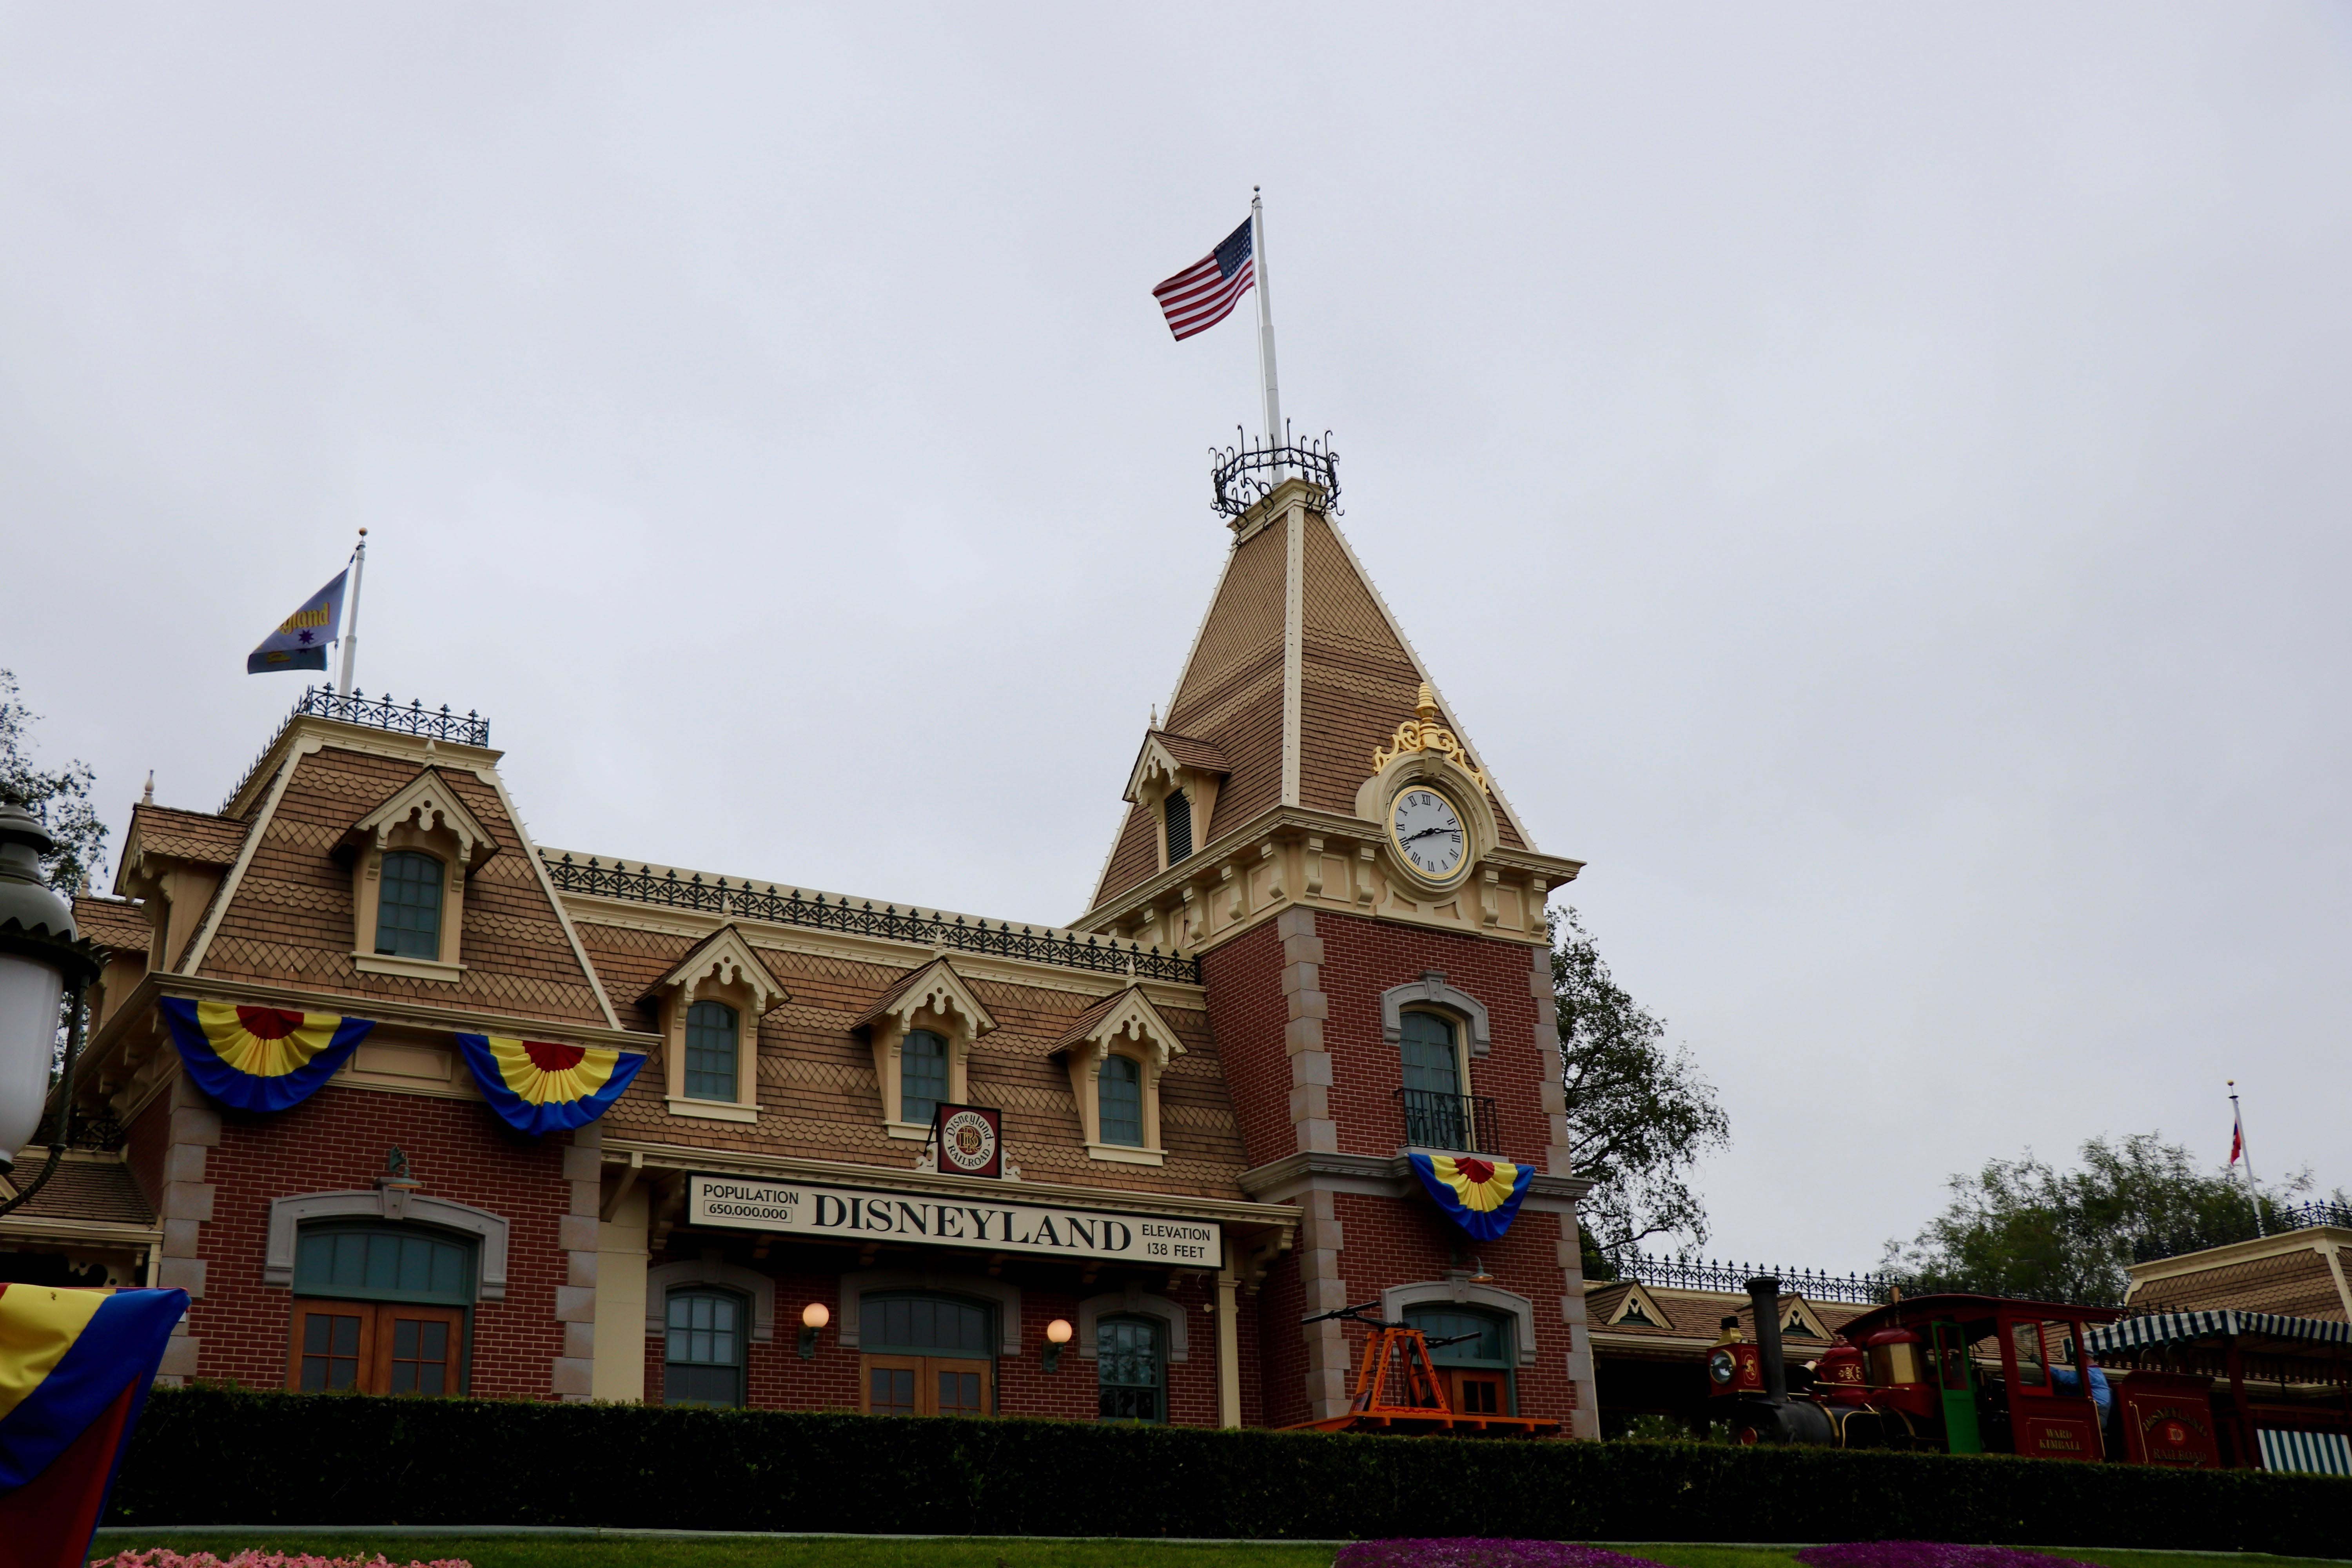 A Visit in Pictures: Pixar Pier and Disneyland – Theme Park Duo